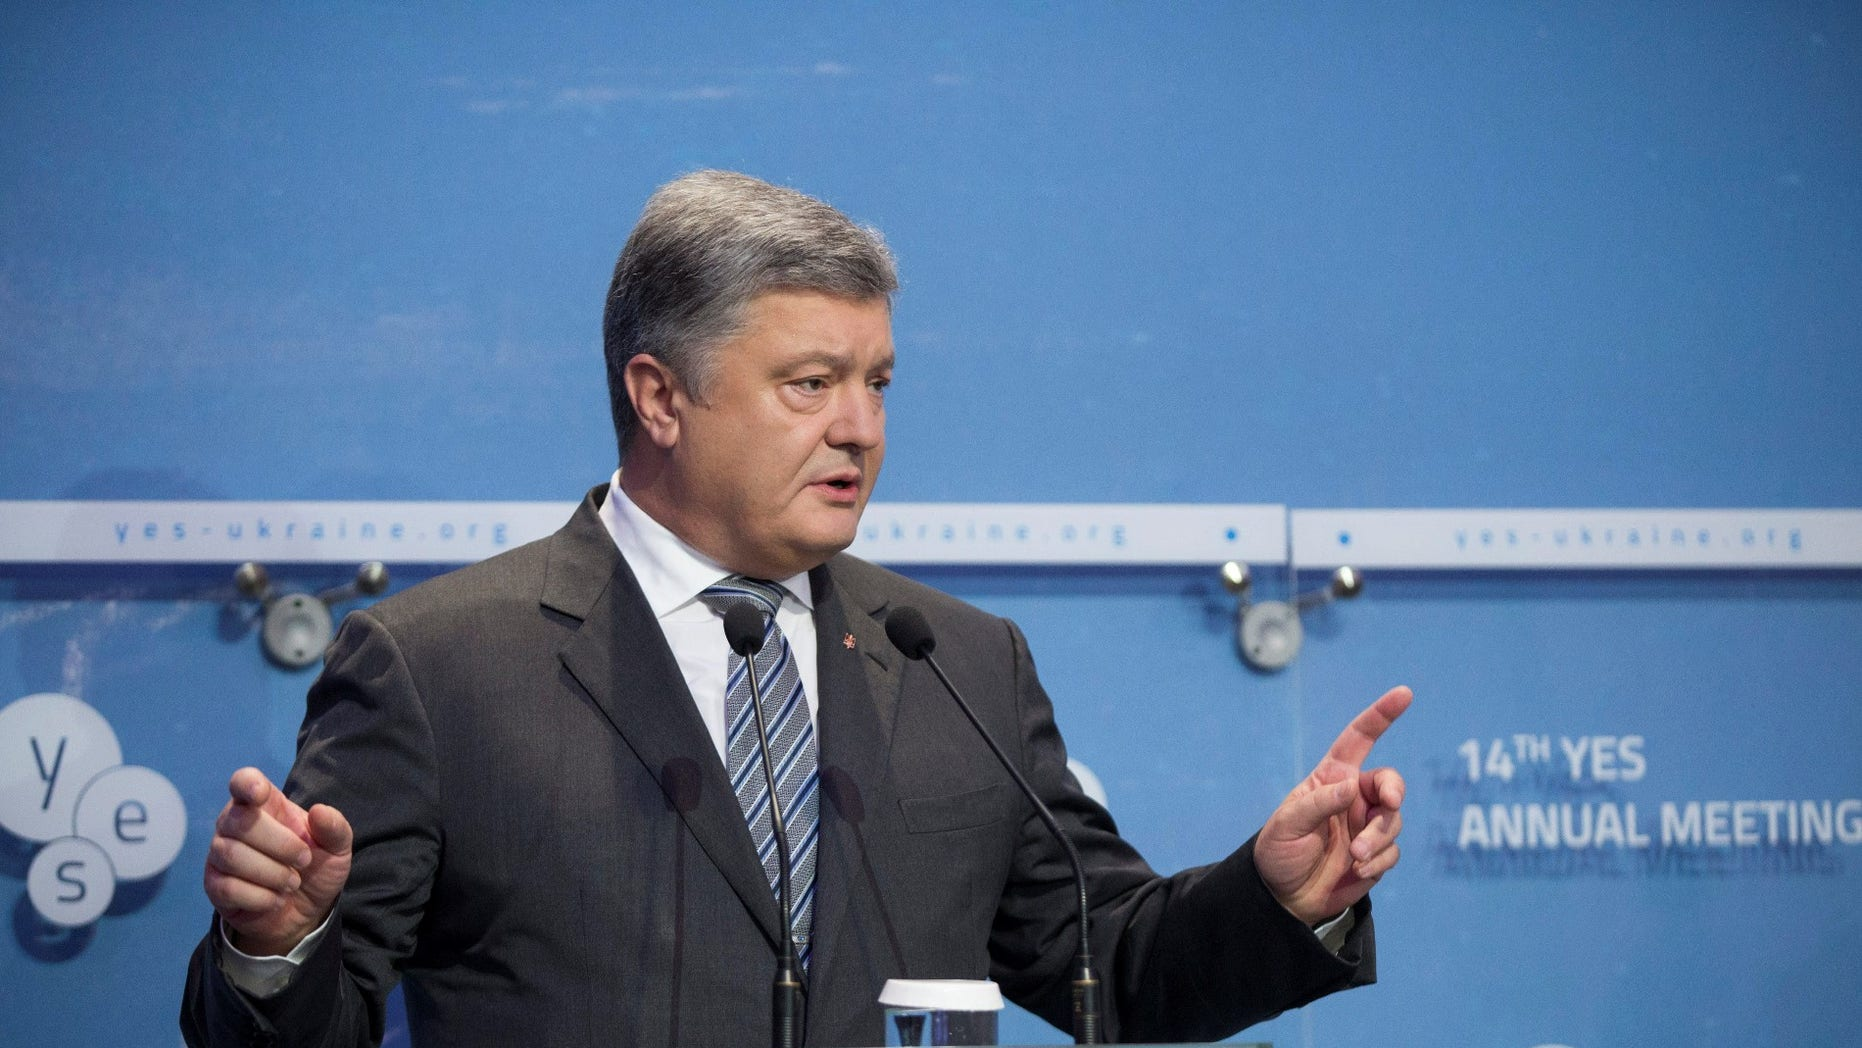 Ukrainian President Petro Poroshenko delivers a speech at the opening of the annual Yalta European Strategy (YES) conference in Kiev, Ukraine September 15, 2017.